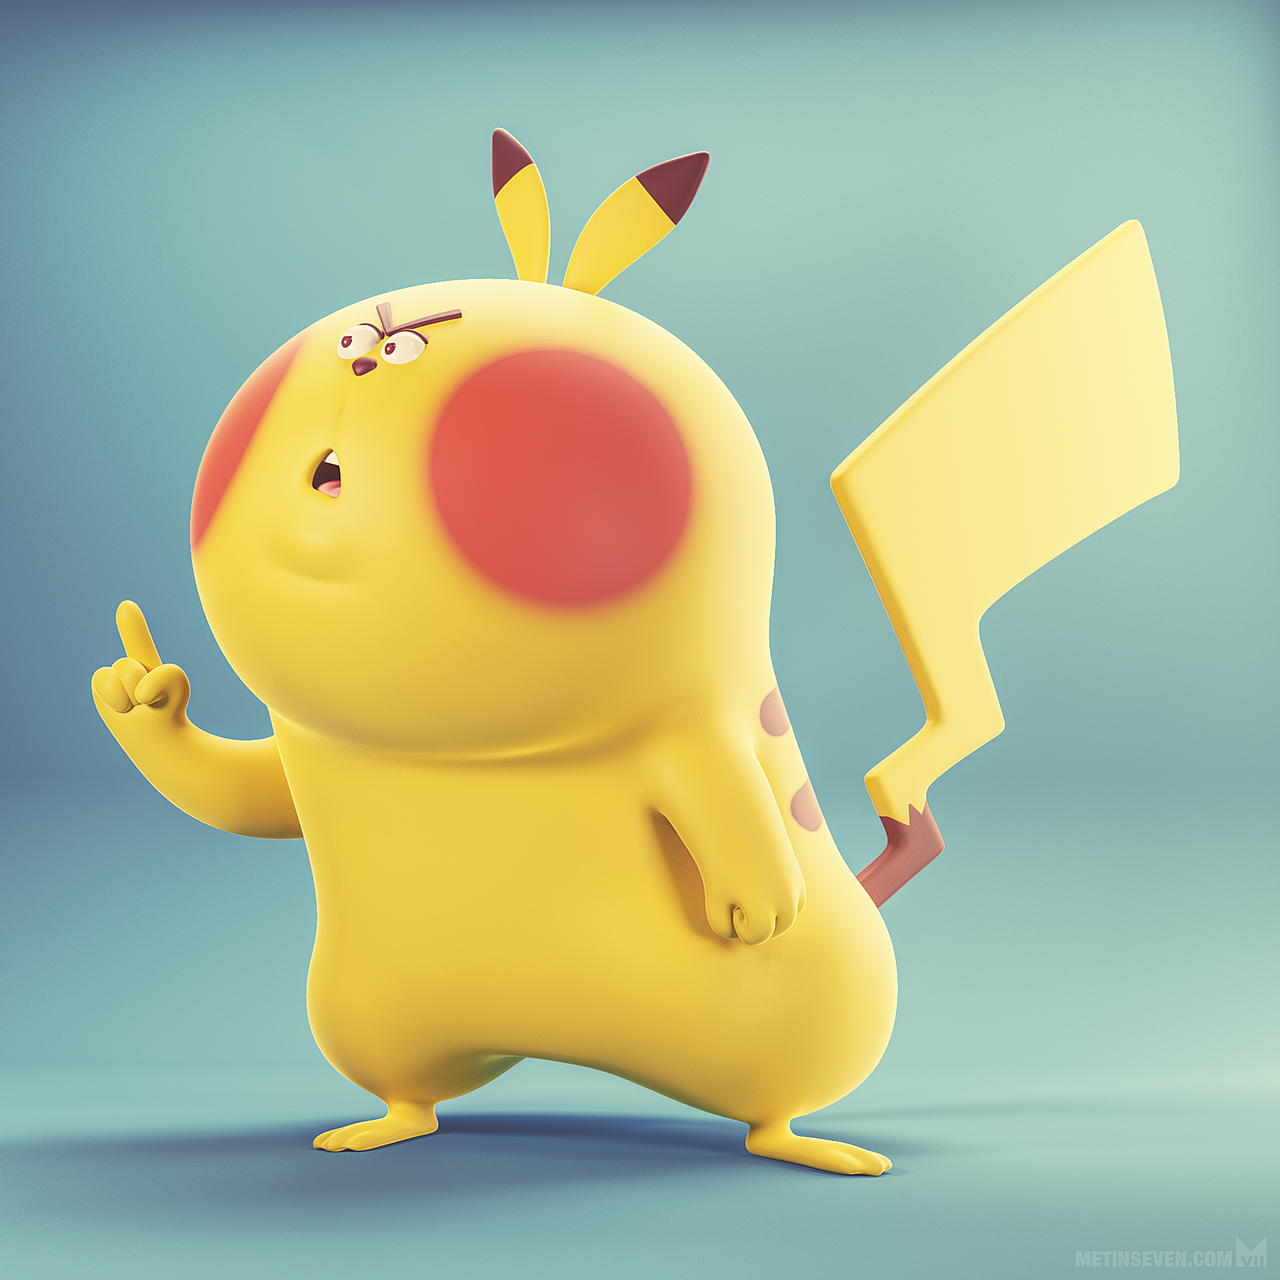 Don't mess with the Pika ☝